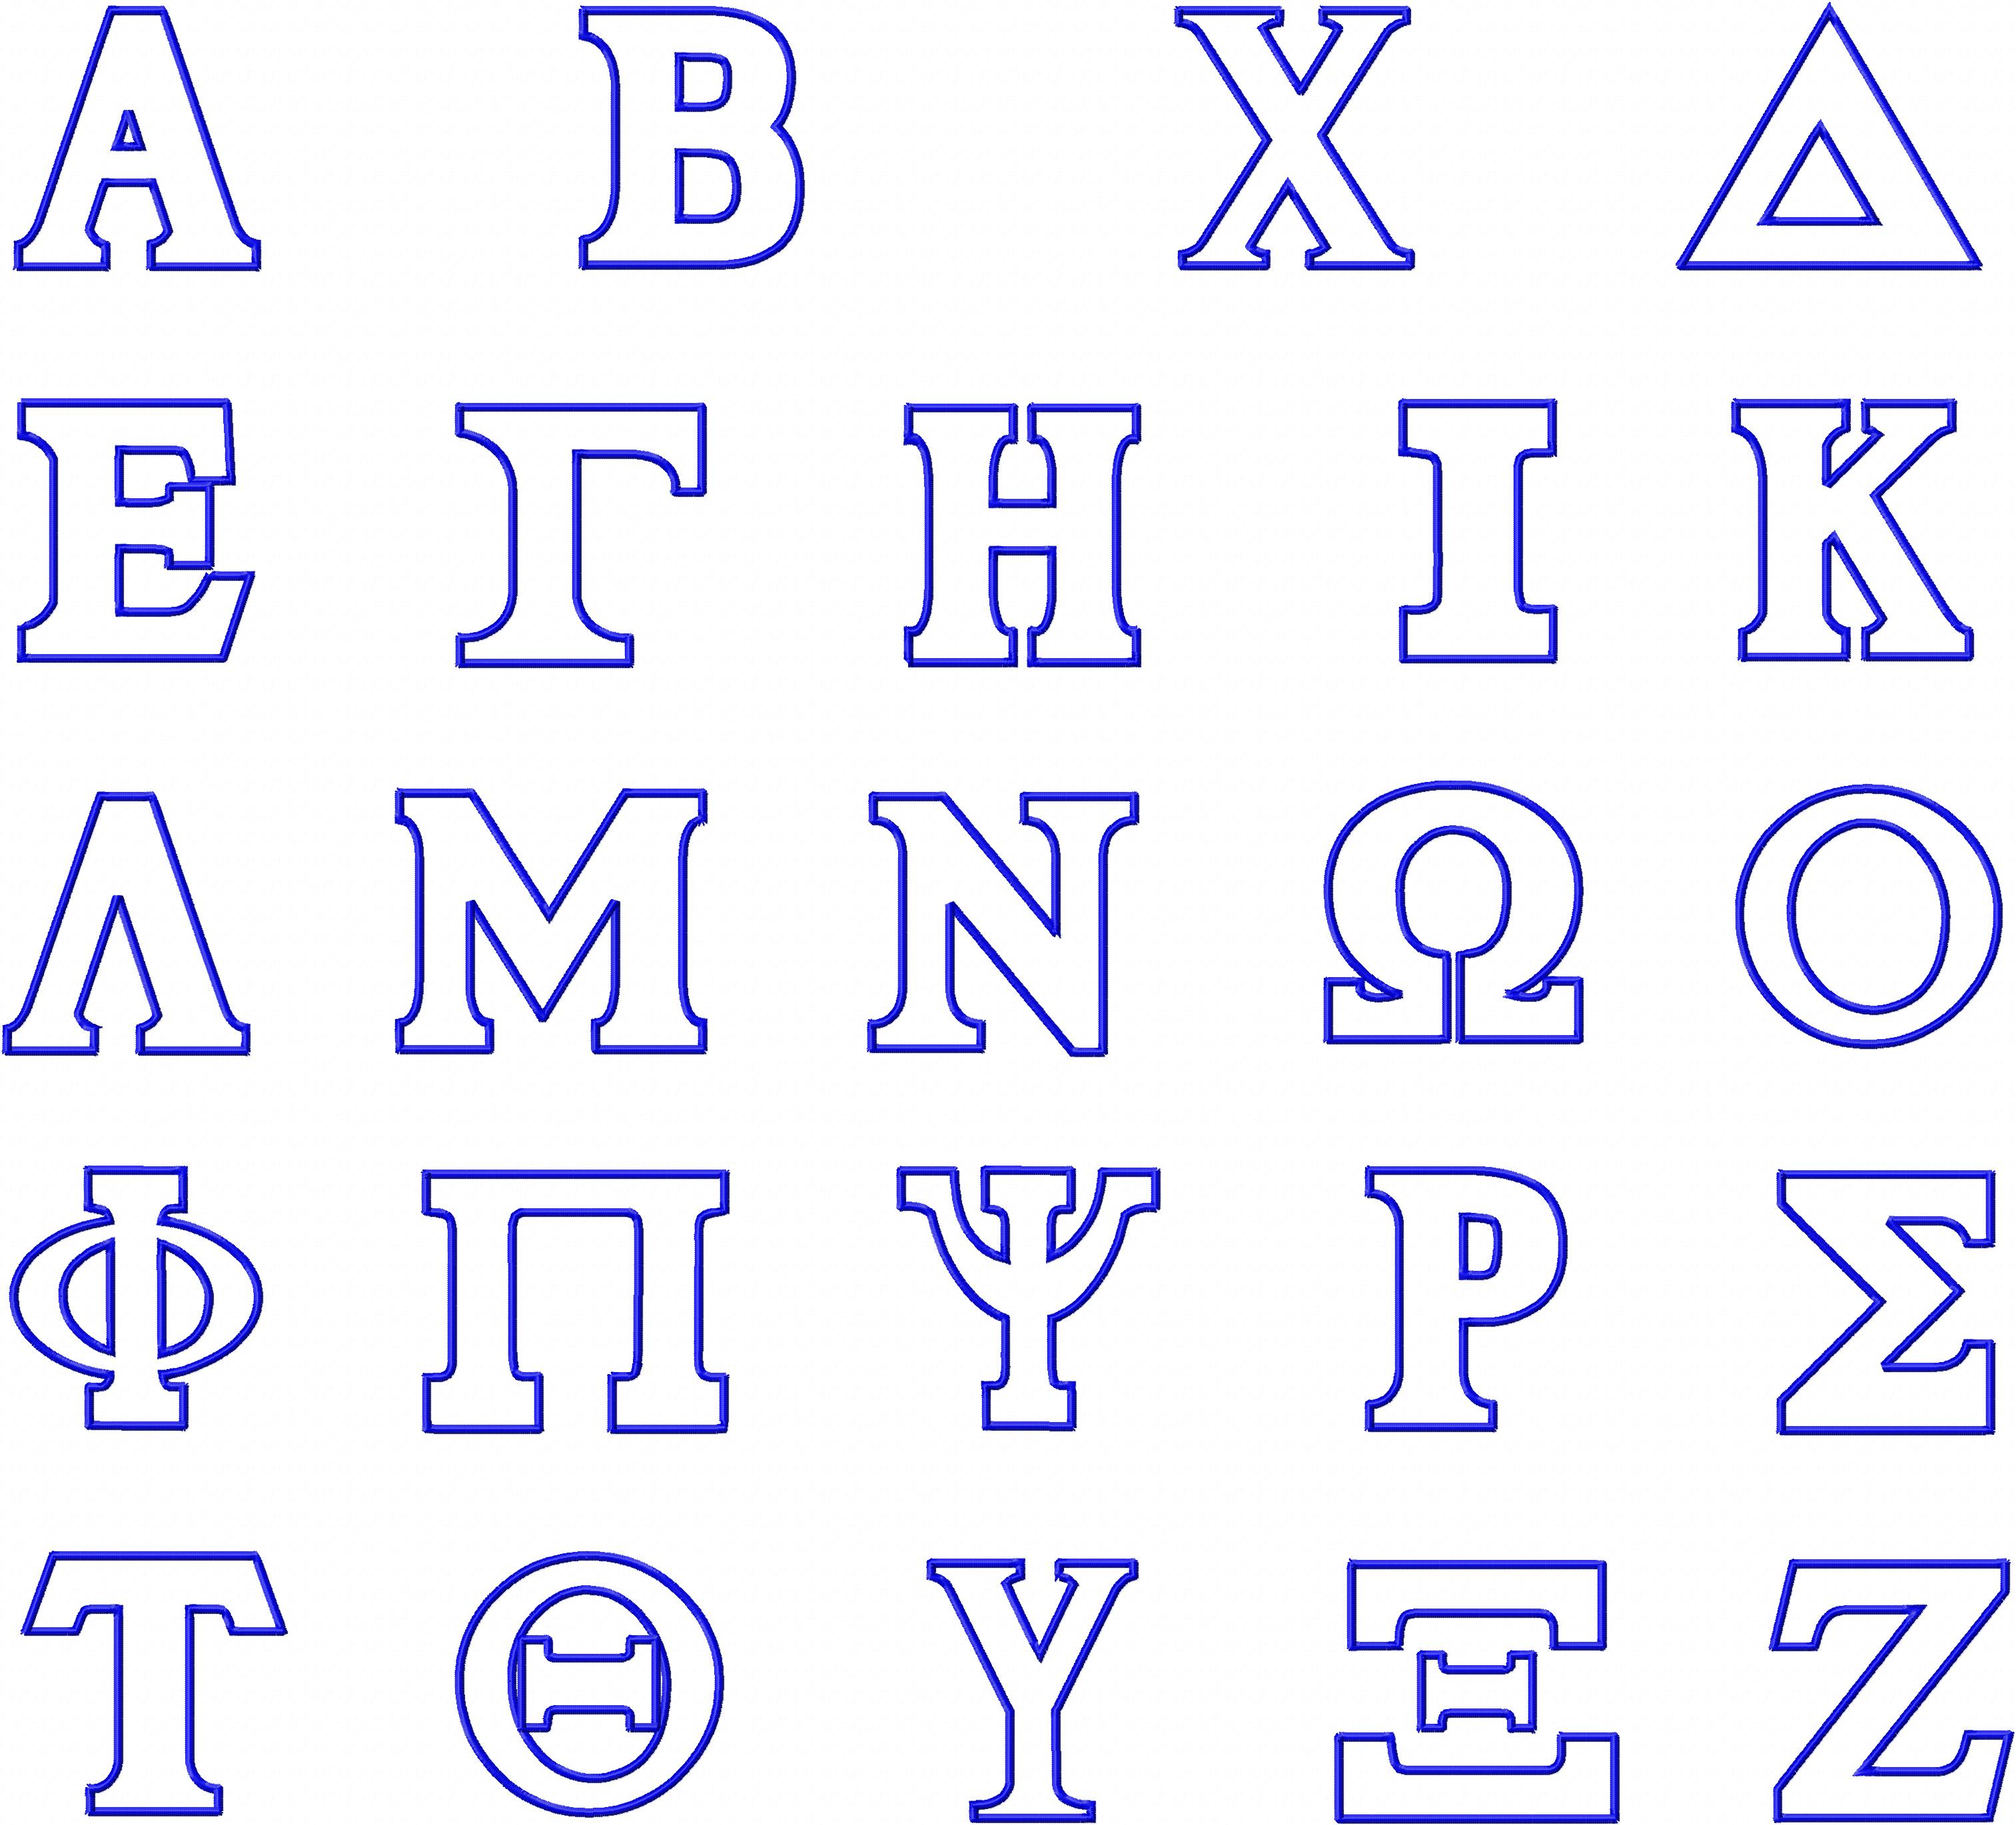 Applique font deal 35 machine embroidery fonts for Greek letters purchase